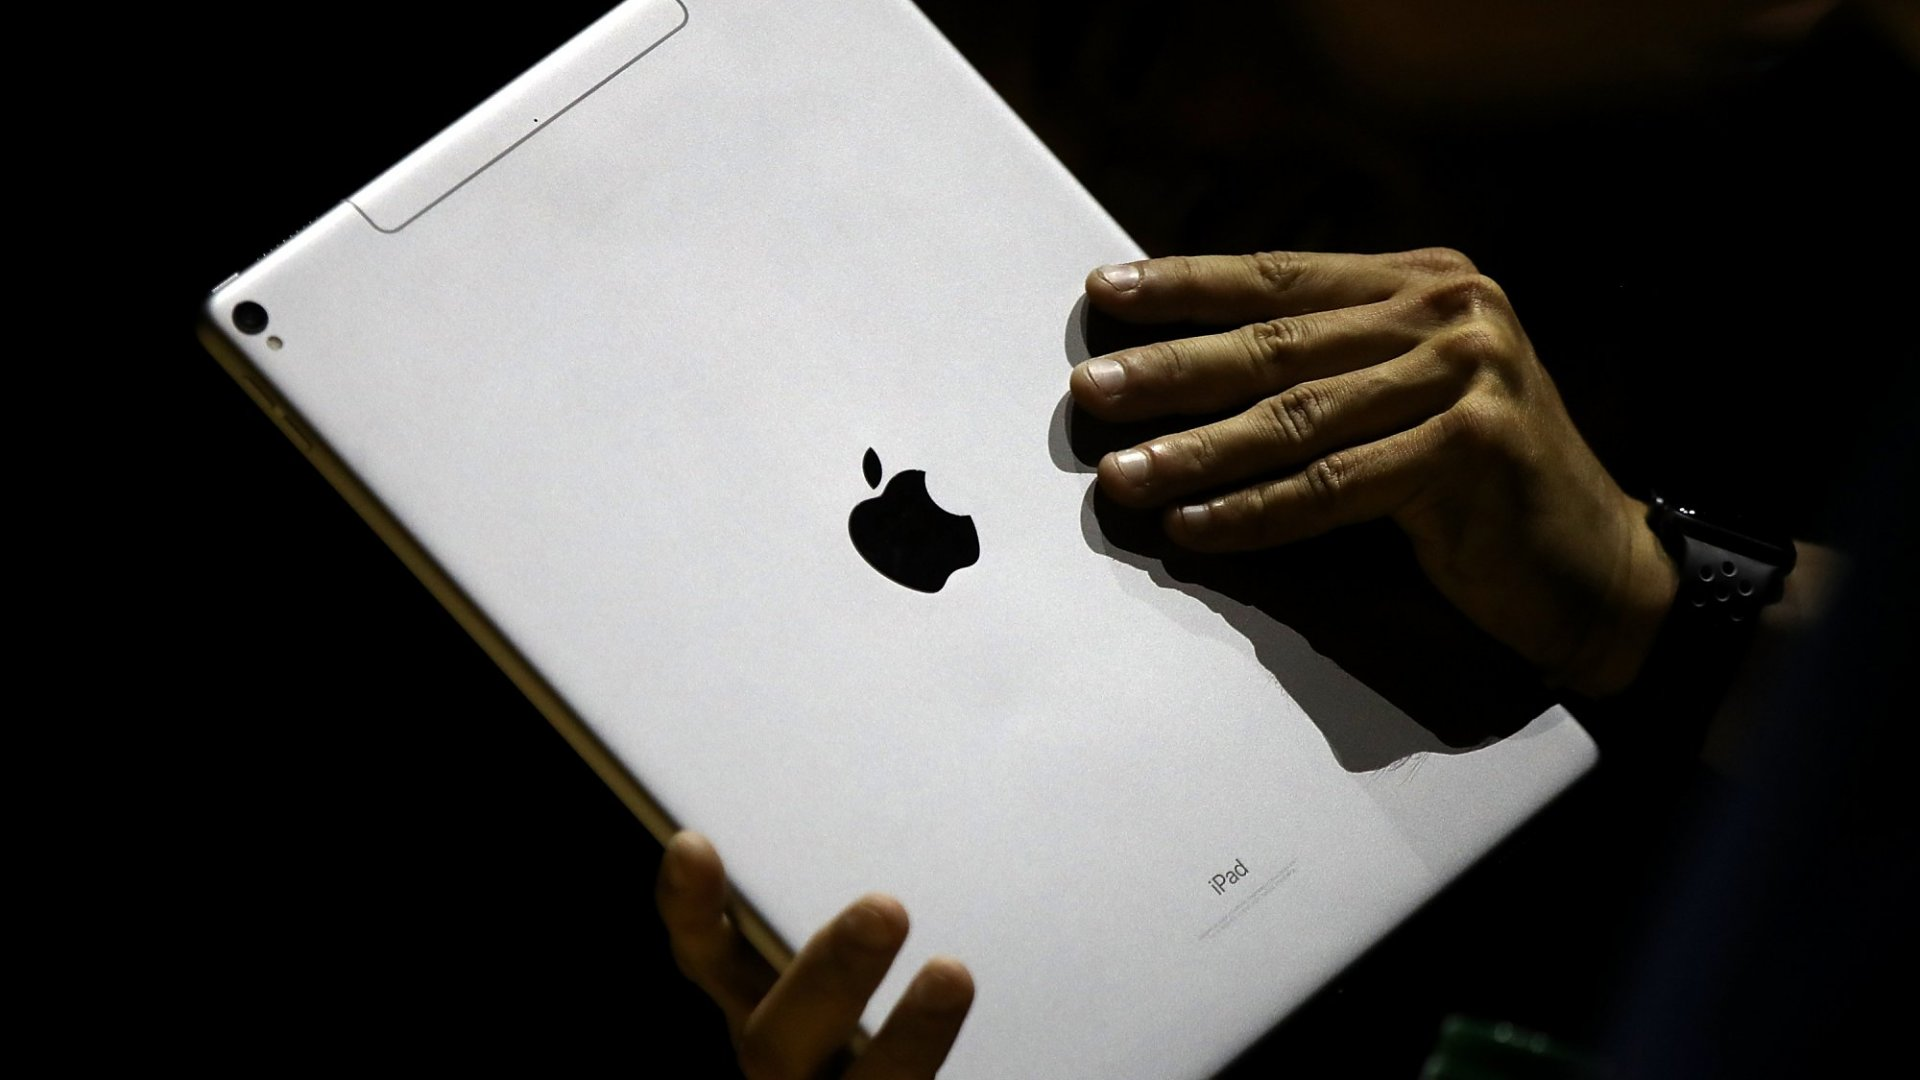 Retailers Are Selling the Apple iPad at a Steep Discount Right Now. Here's Why You Should Buy One